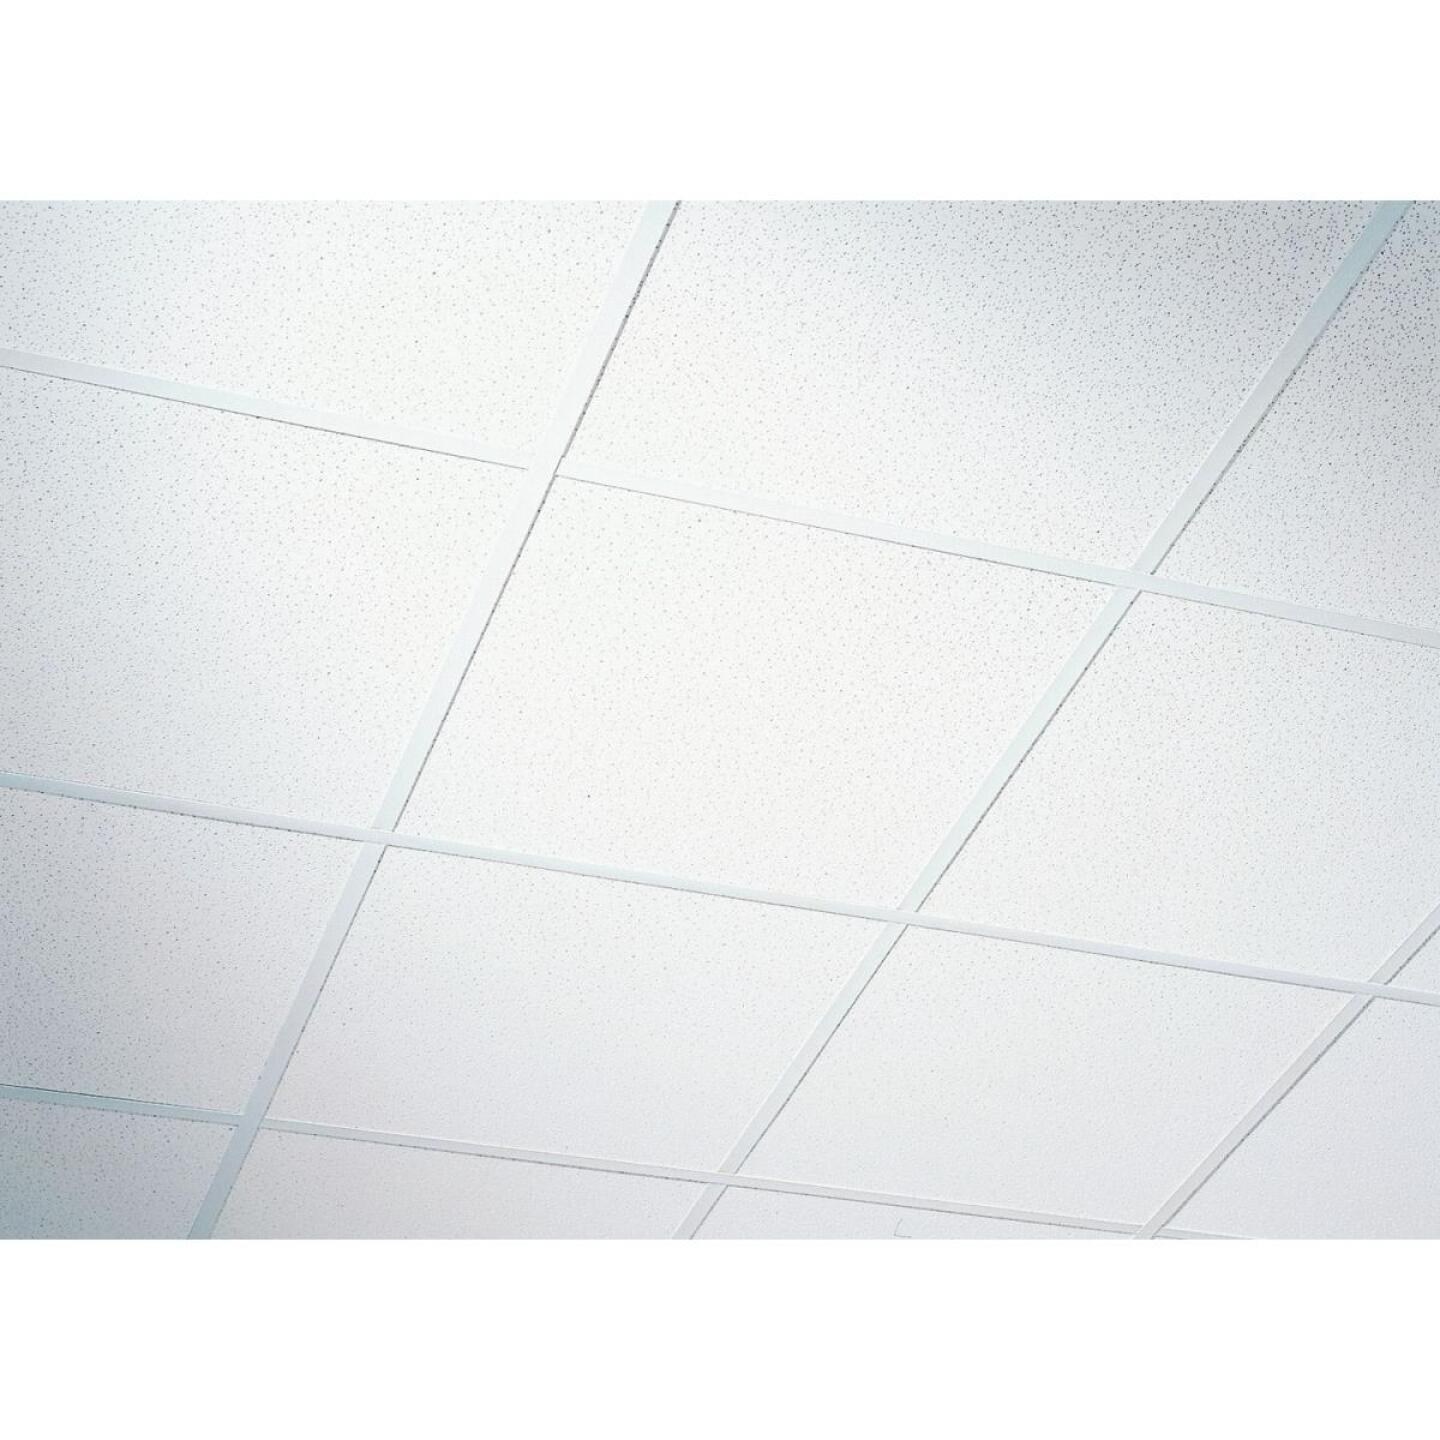 Radar Fissured 2 Ft. x 2 Ft. White Mineral Fiber Shadowline Tapered Suspended Ceiling Tile (16-Count) Image 1